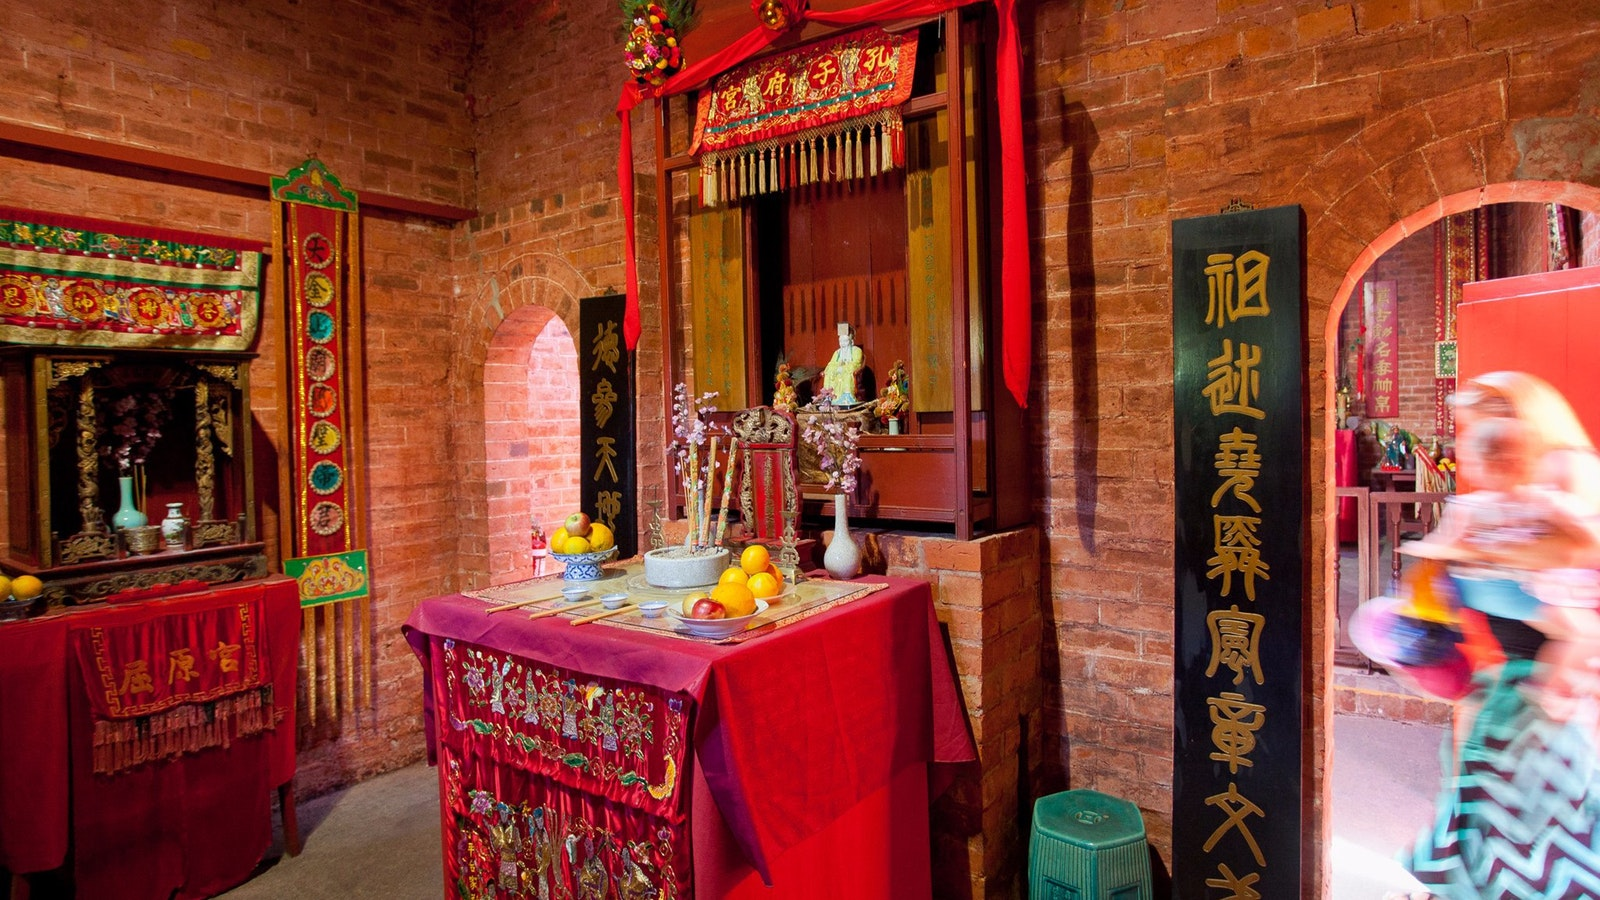 Bendigo Joss House Temple - Entrance Chamber